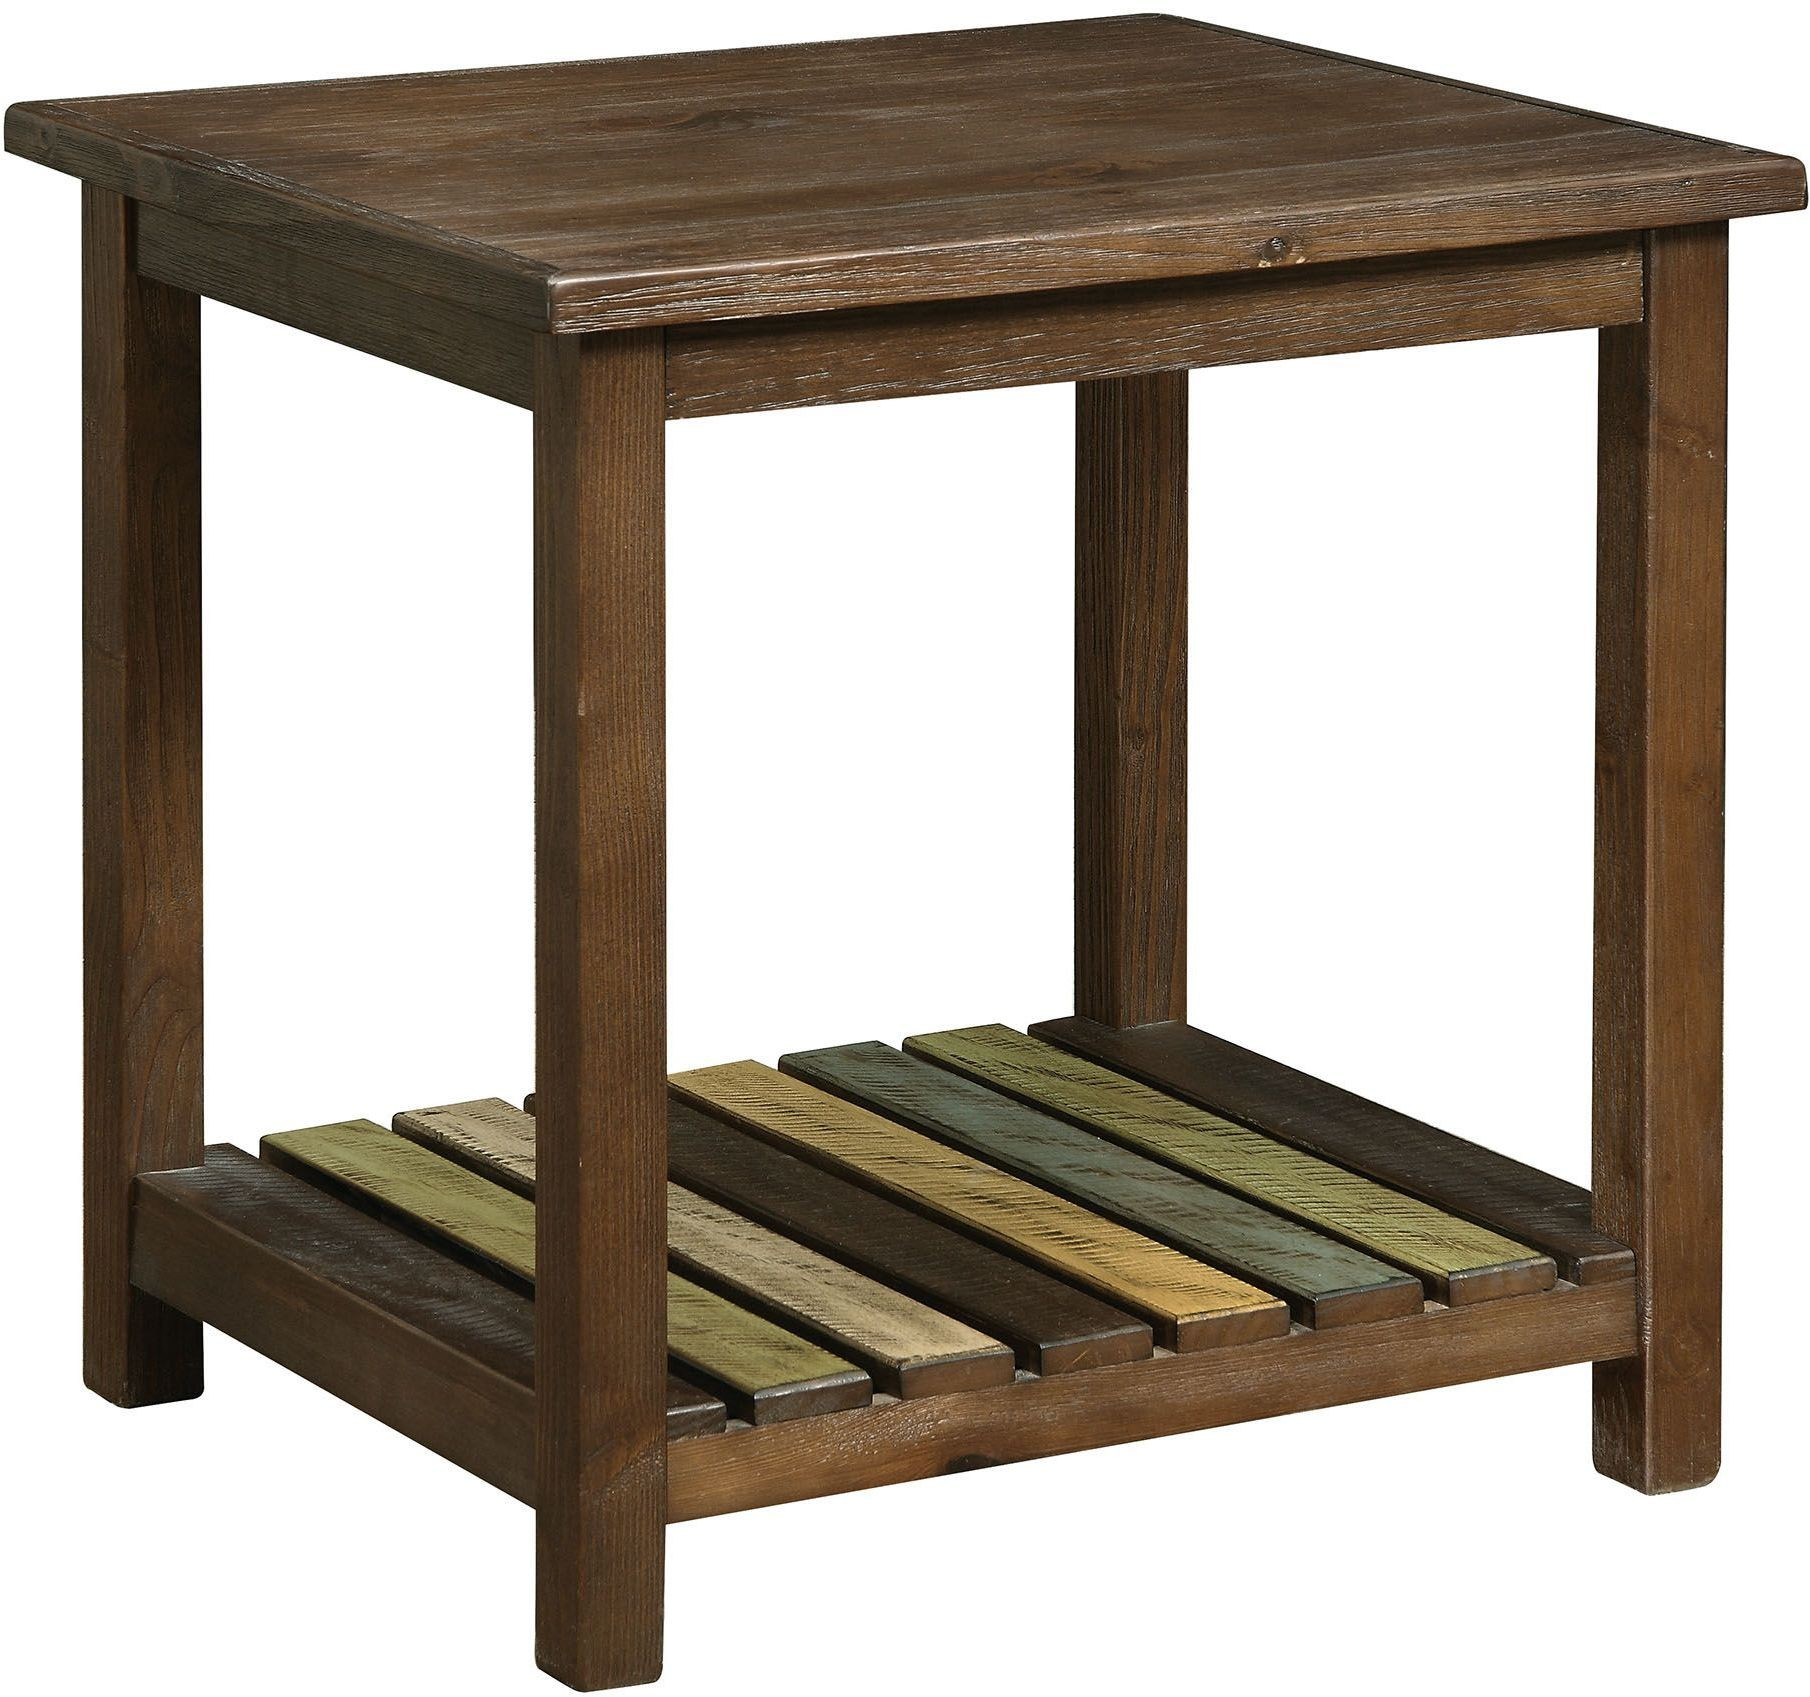 Very Impressive portraiture of Whitwell Brown Cherry End Table CM4445E Furniture of America with #8D723E color and 1810x1697 pixels